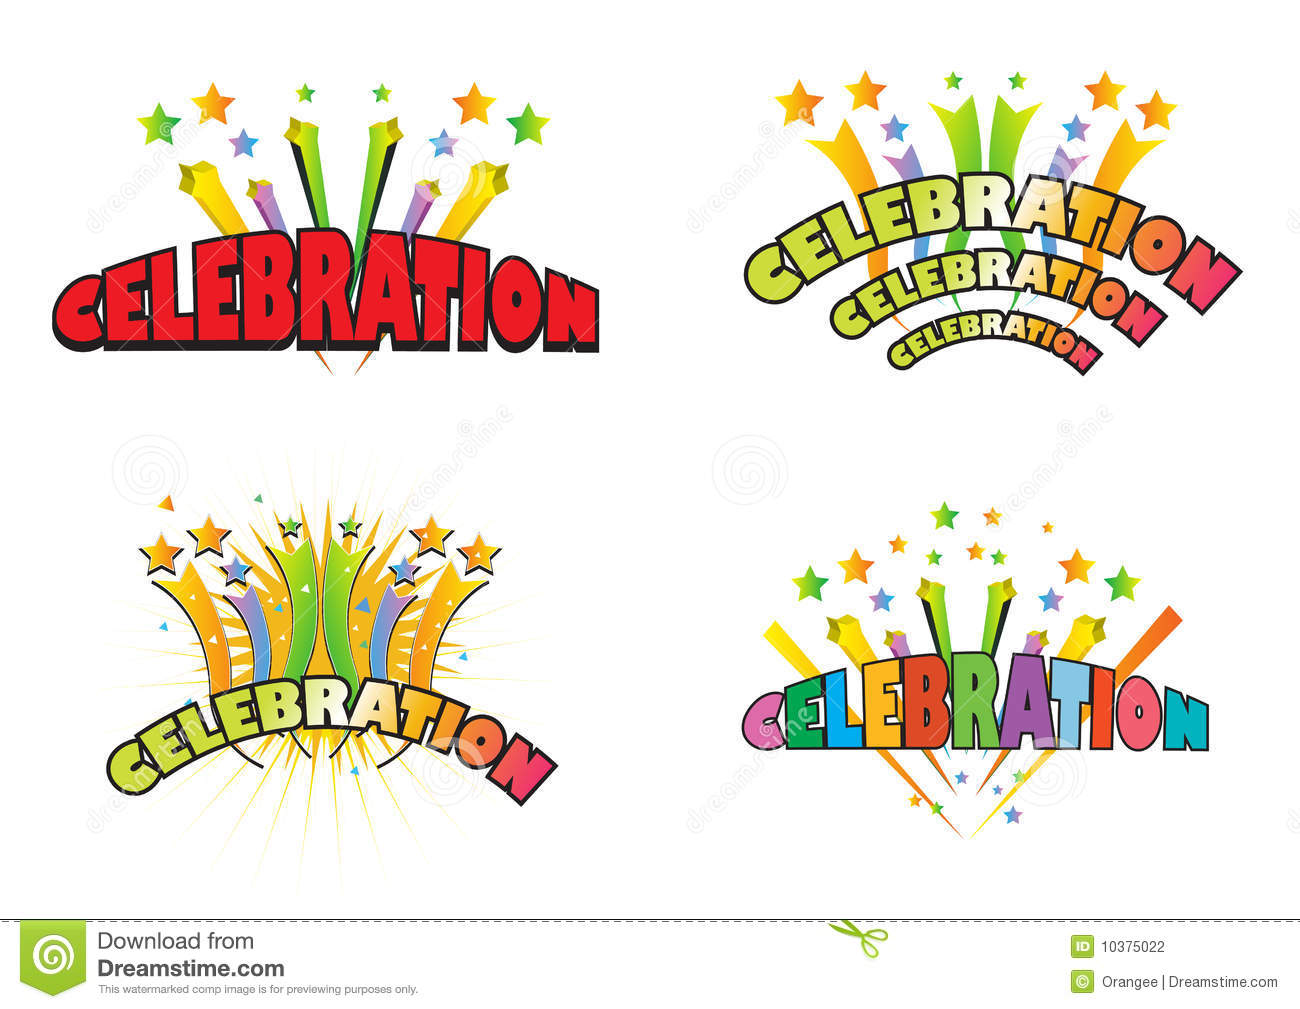 Celebration logos.Adobe illustrator file is available.